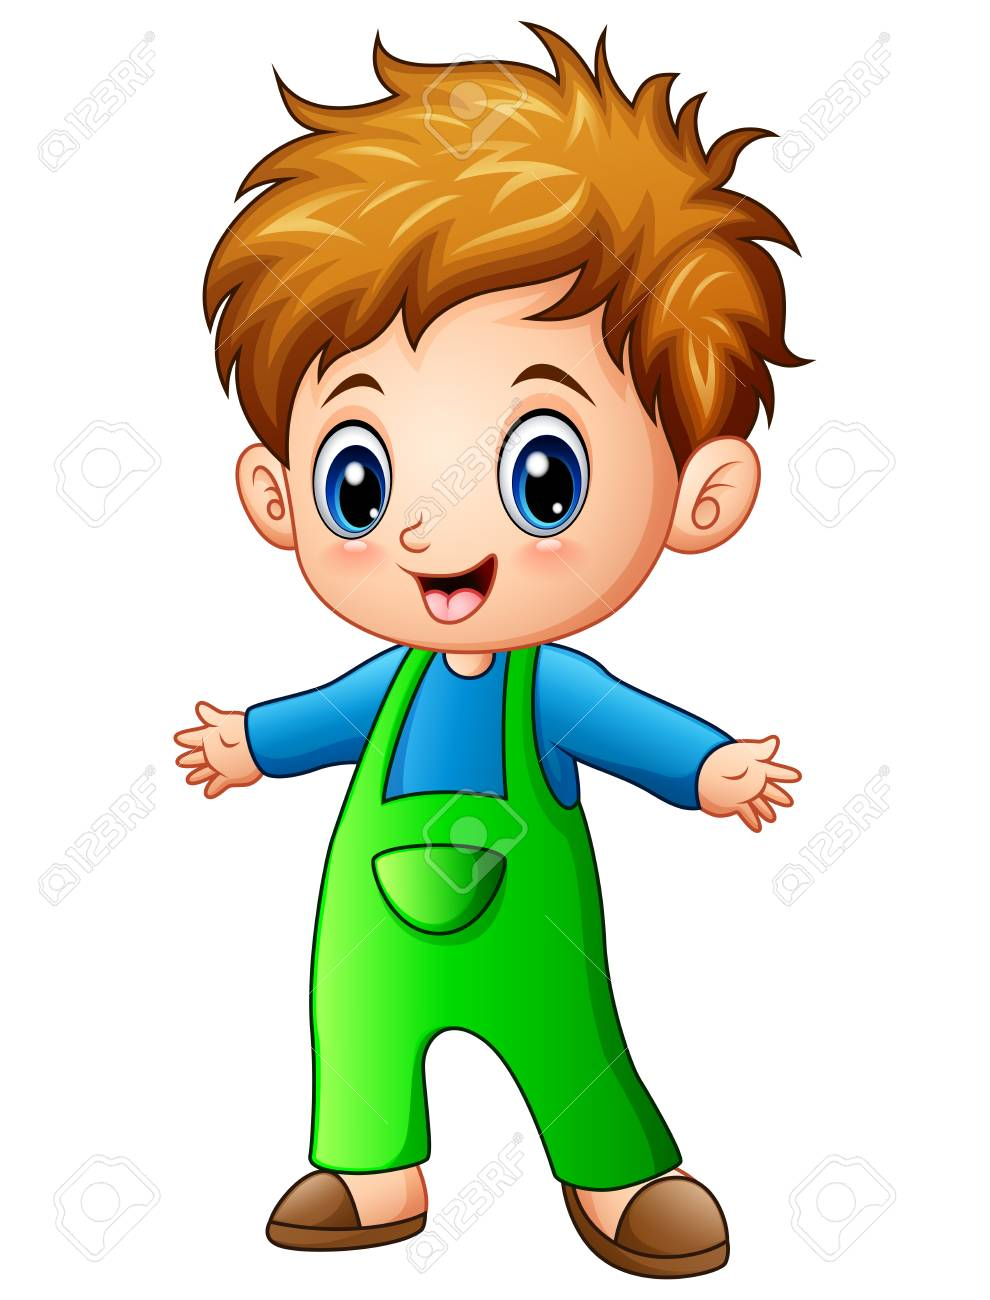 Cute Little Boy Cartoon Stock Photo Picture And Royalty Free Image